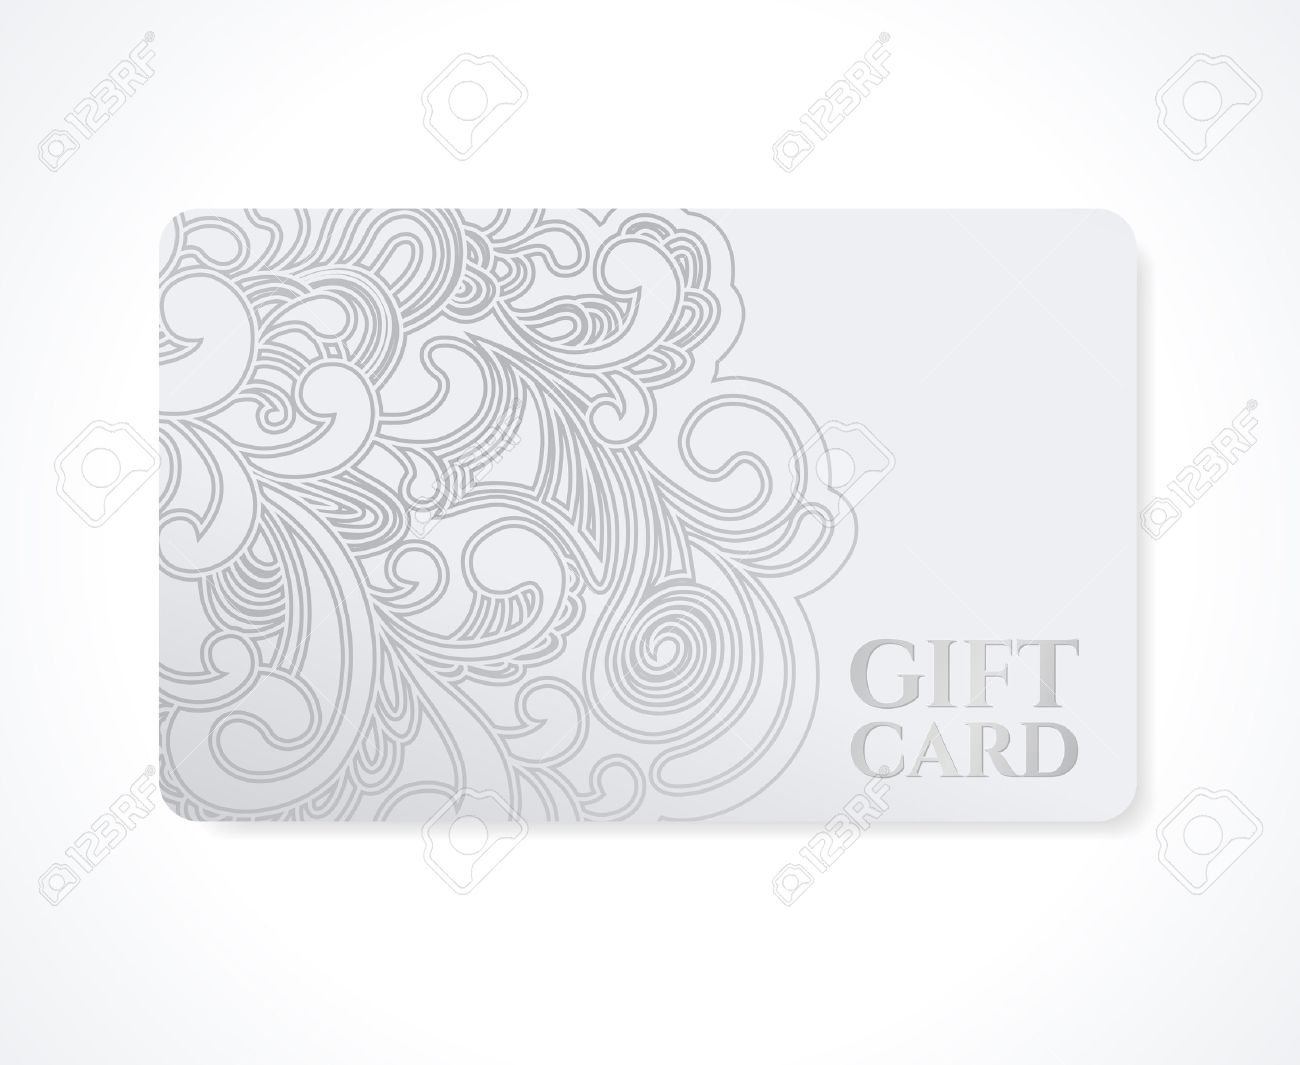 Gift Coupon, Gift Card Discount Card, Business Card With Floral ...